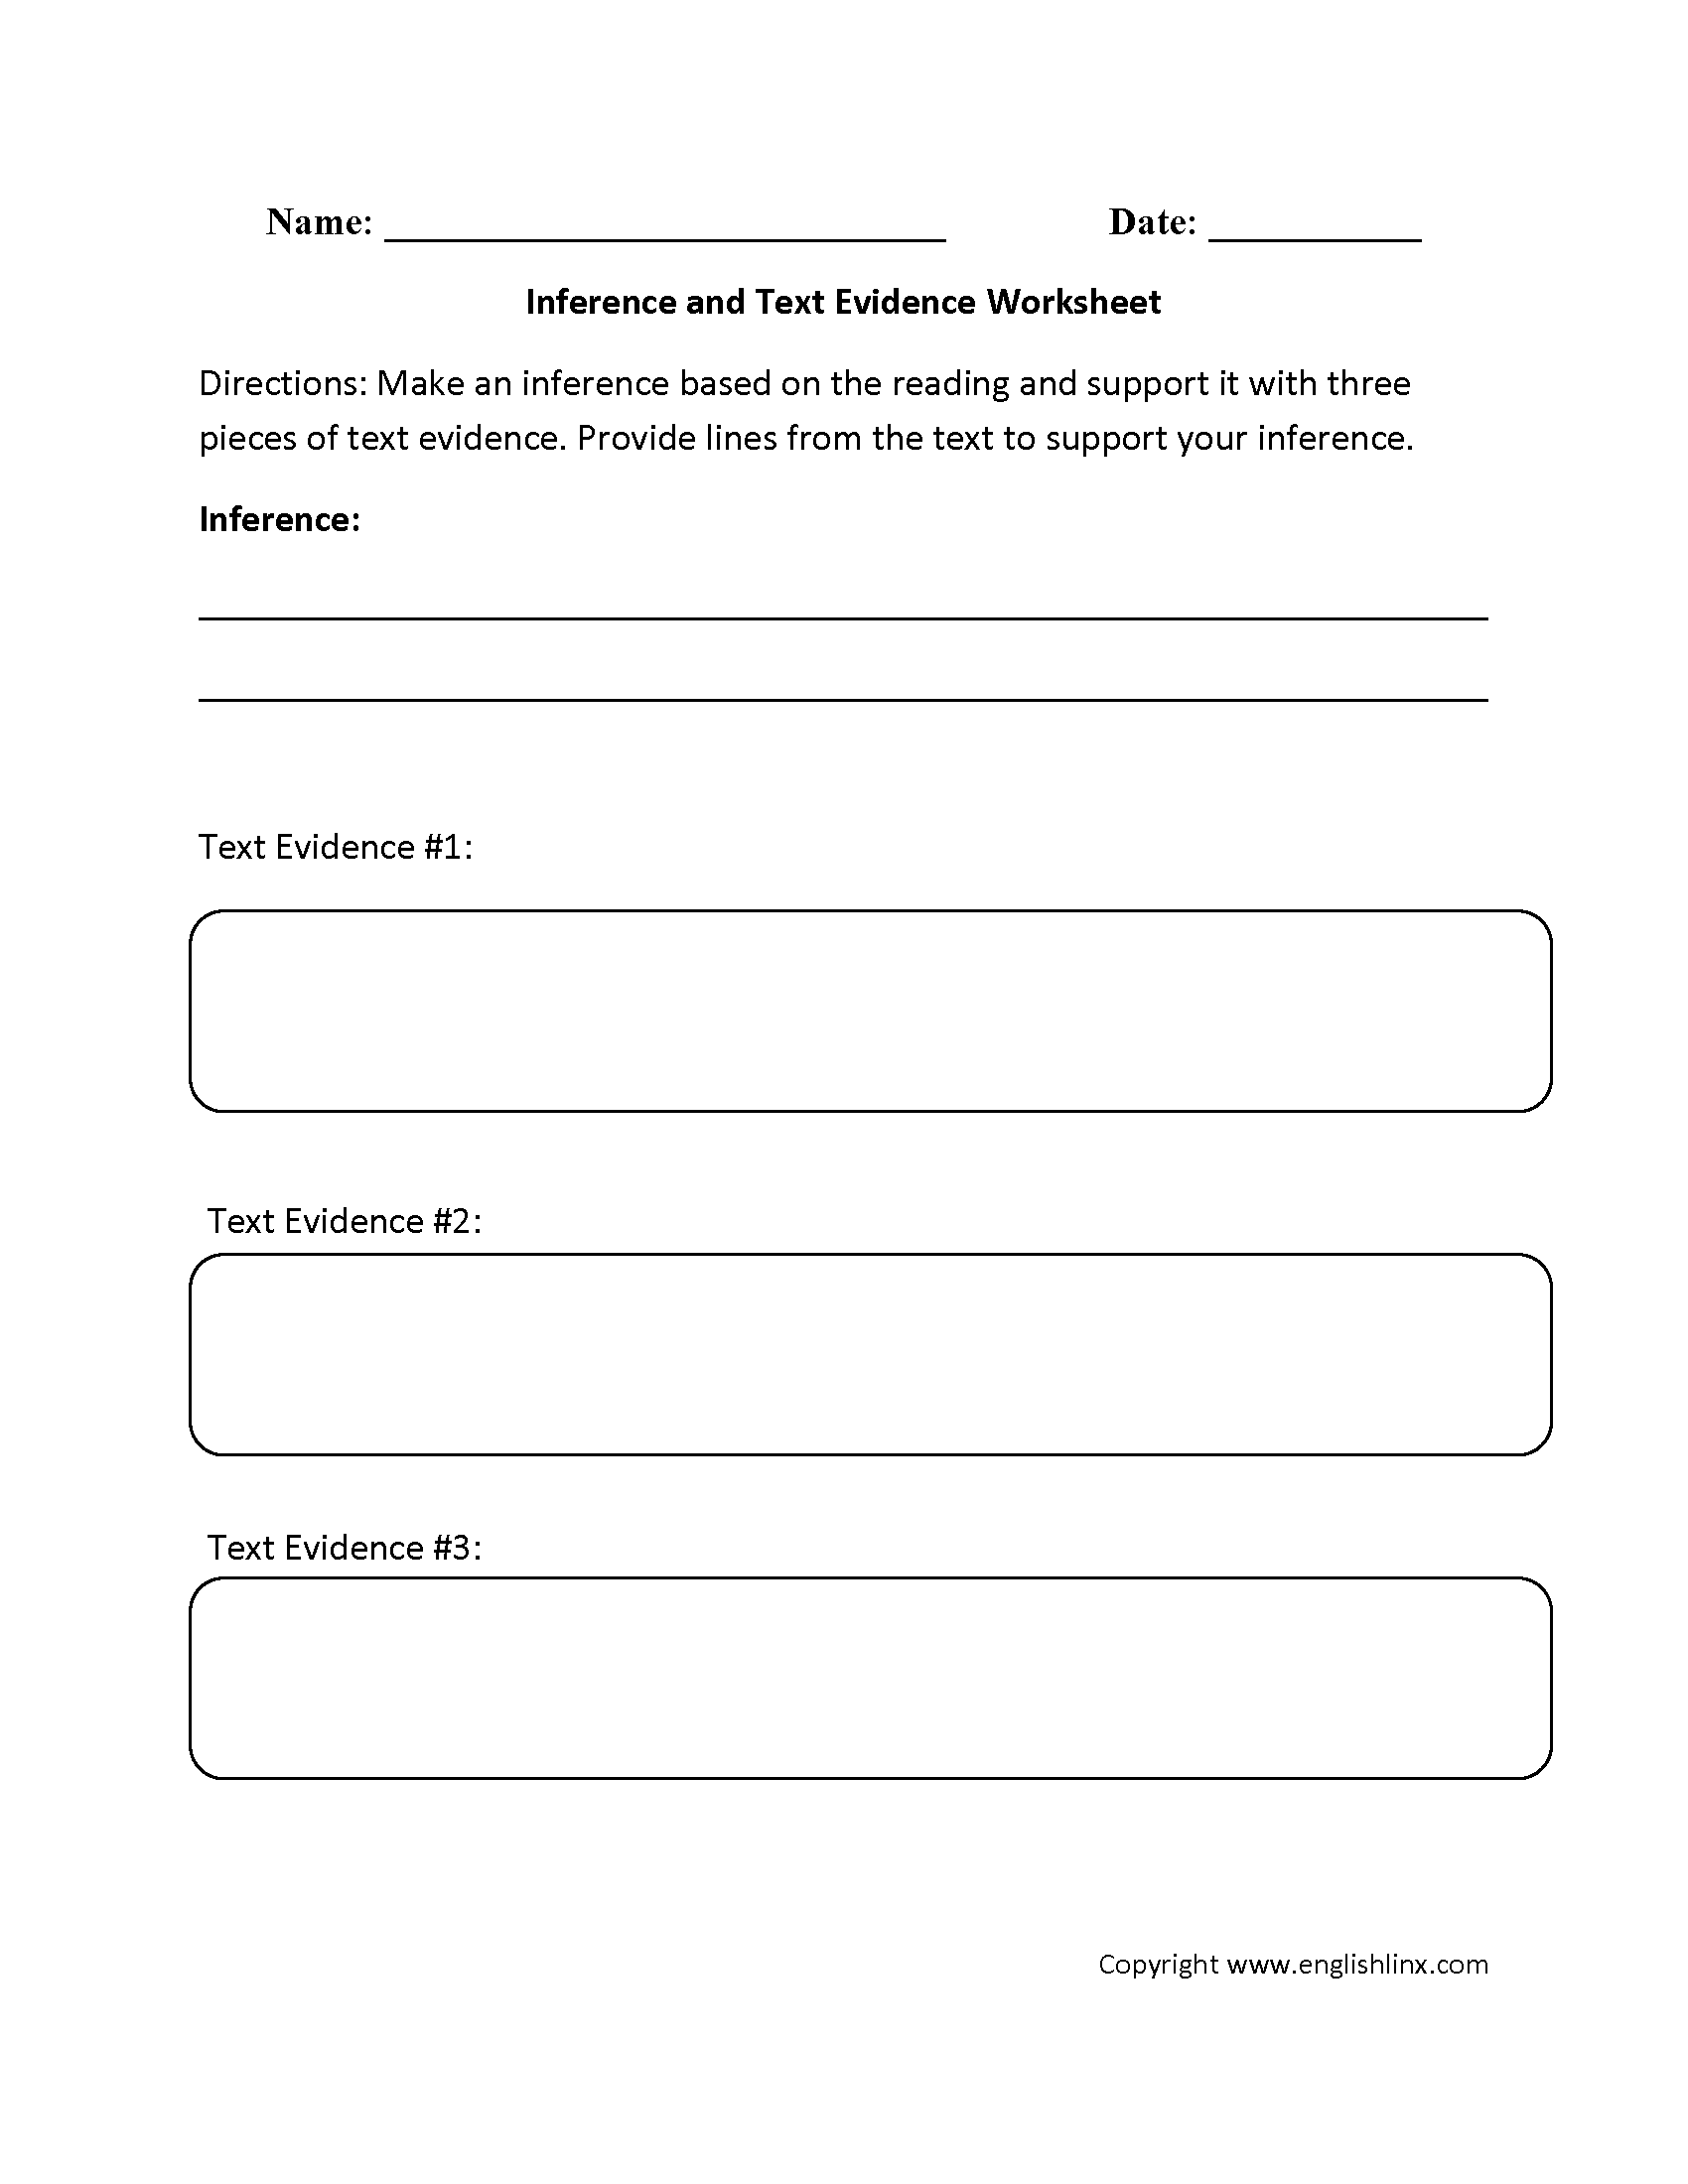 Free Worksheet Inferencing Worksheets 5th Grade text evidence worksheets inference worksheets